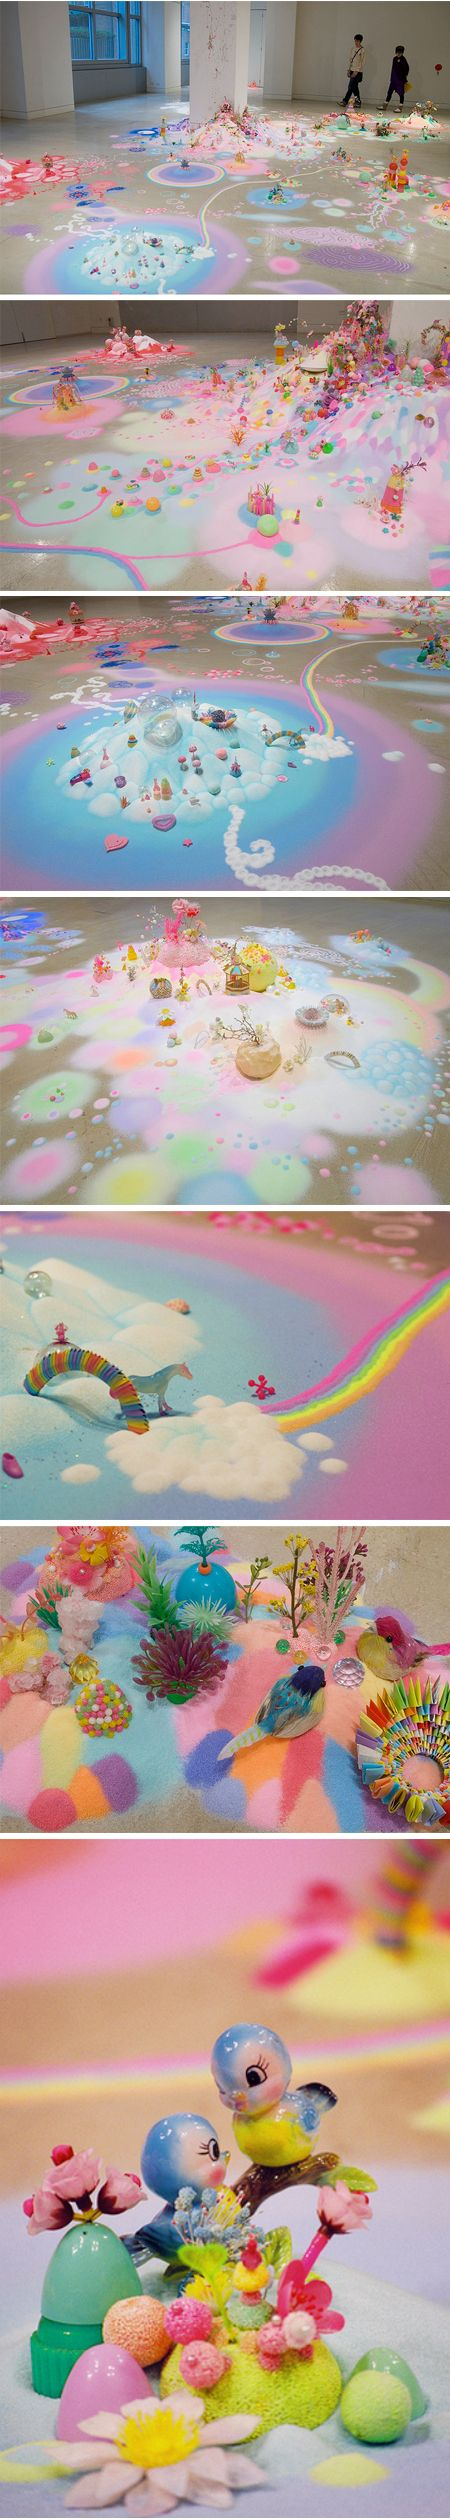 """Art ::: Magical installation piece titled """"Under the Crystal Sky"""" by pip & pop aka Tanya Schultz and Nicole Andrijevic 와 너무이뻐 이런세계관 ㅠ 이게바로 캔디아일랜드일까"""